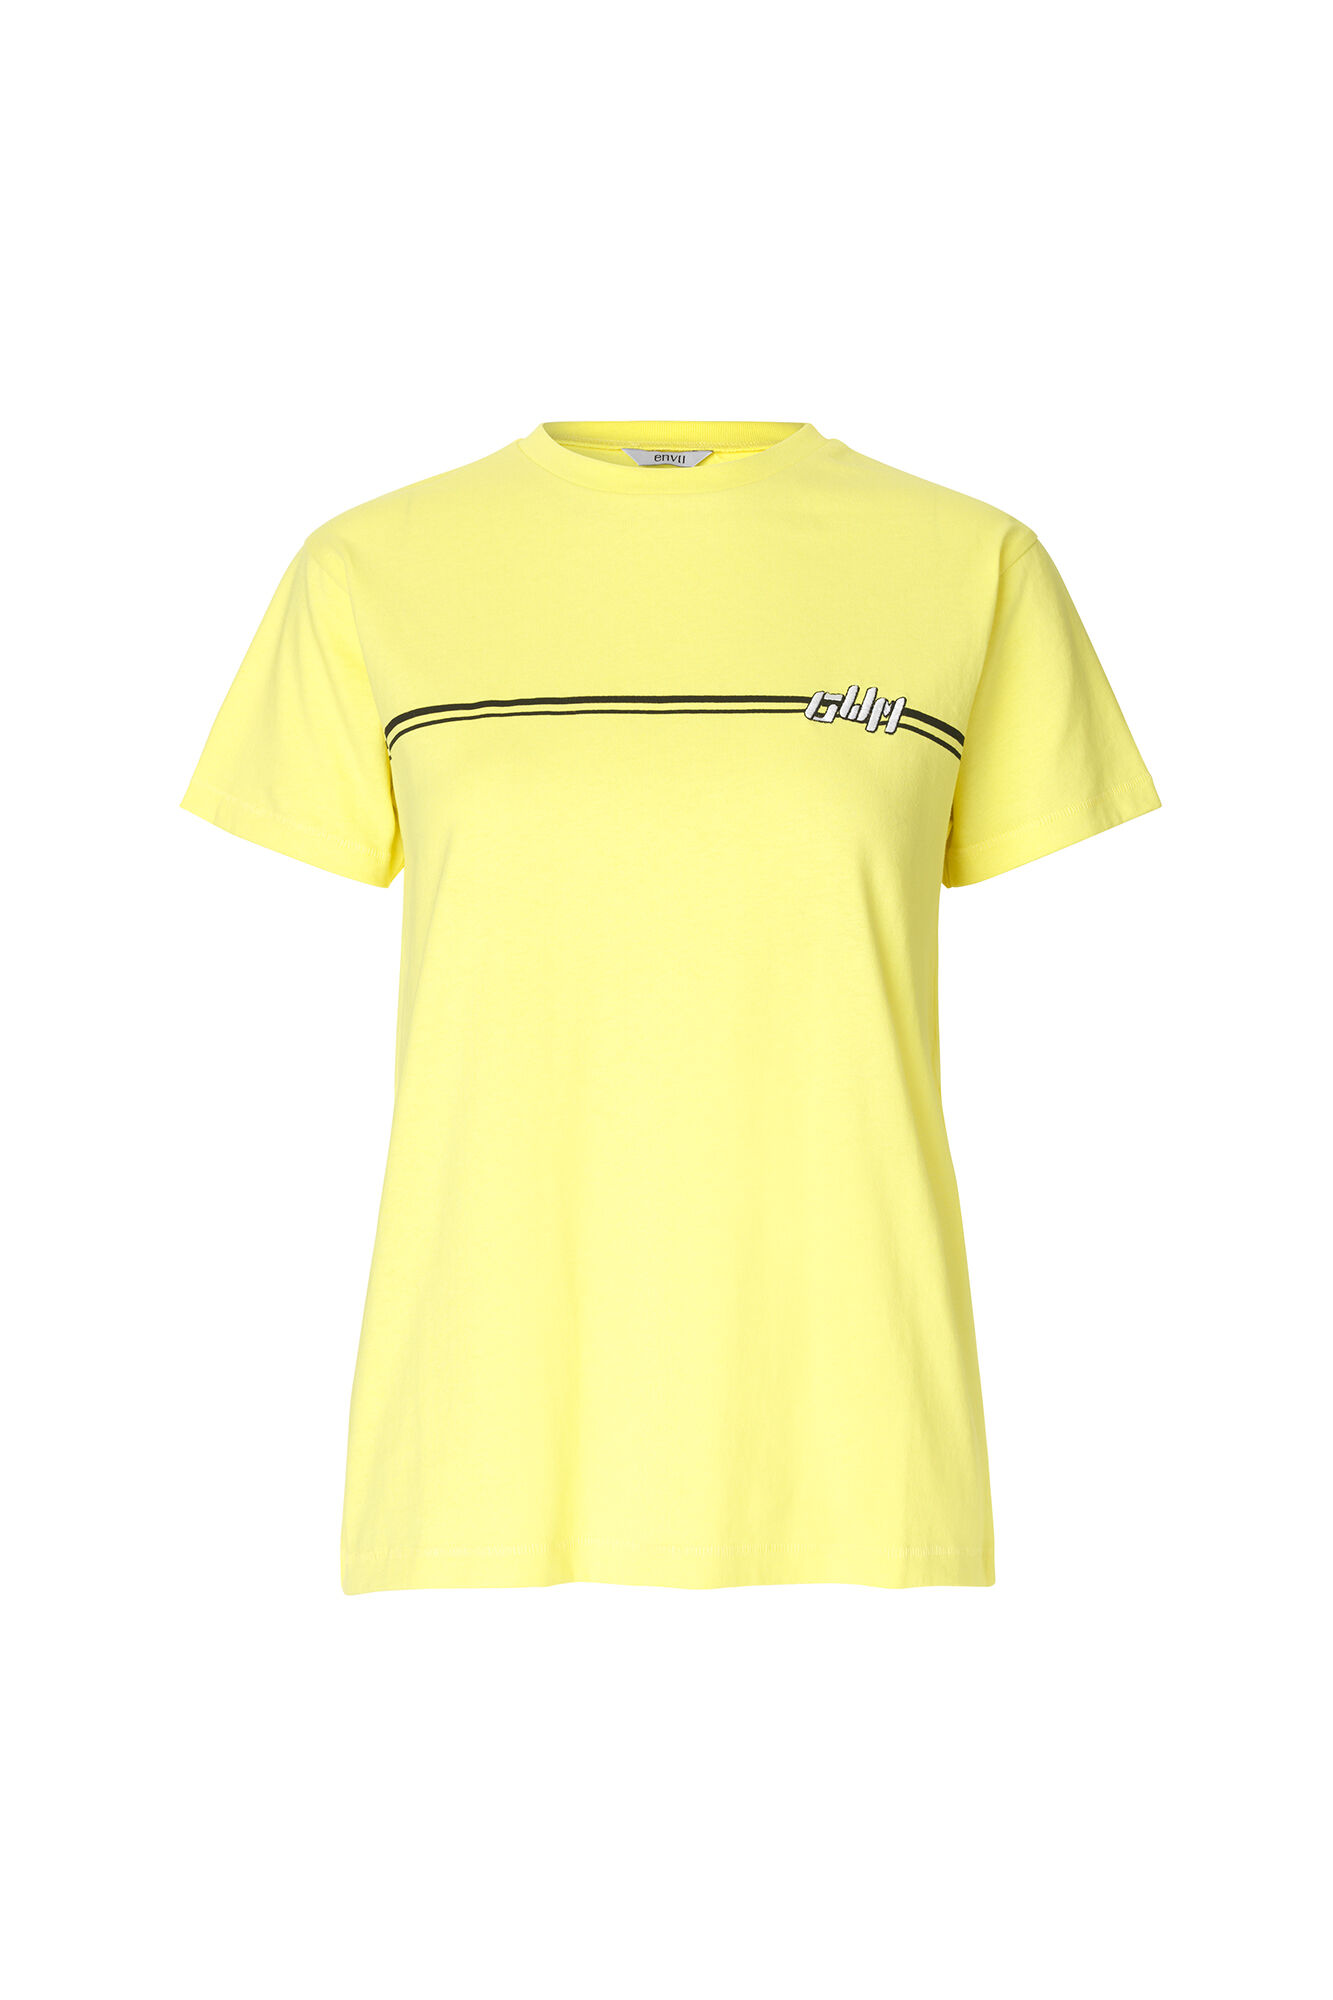 ENMOTO SS TEE CLUB 5901, YELLOW CREAM